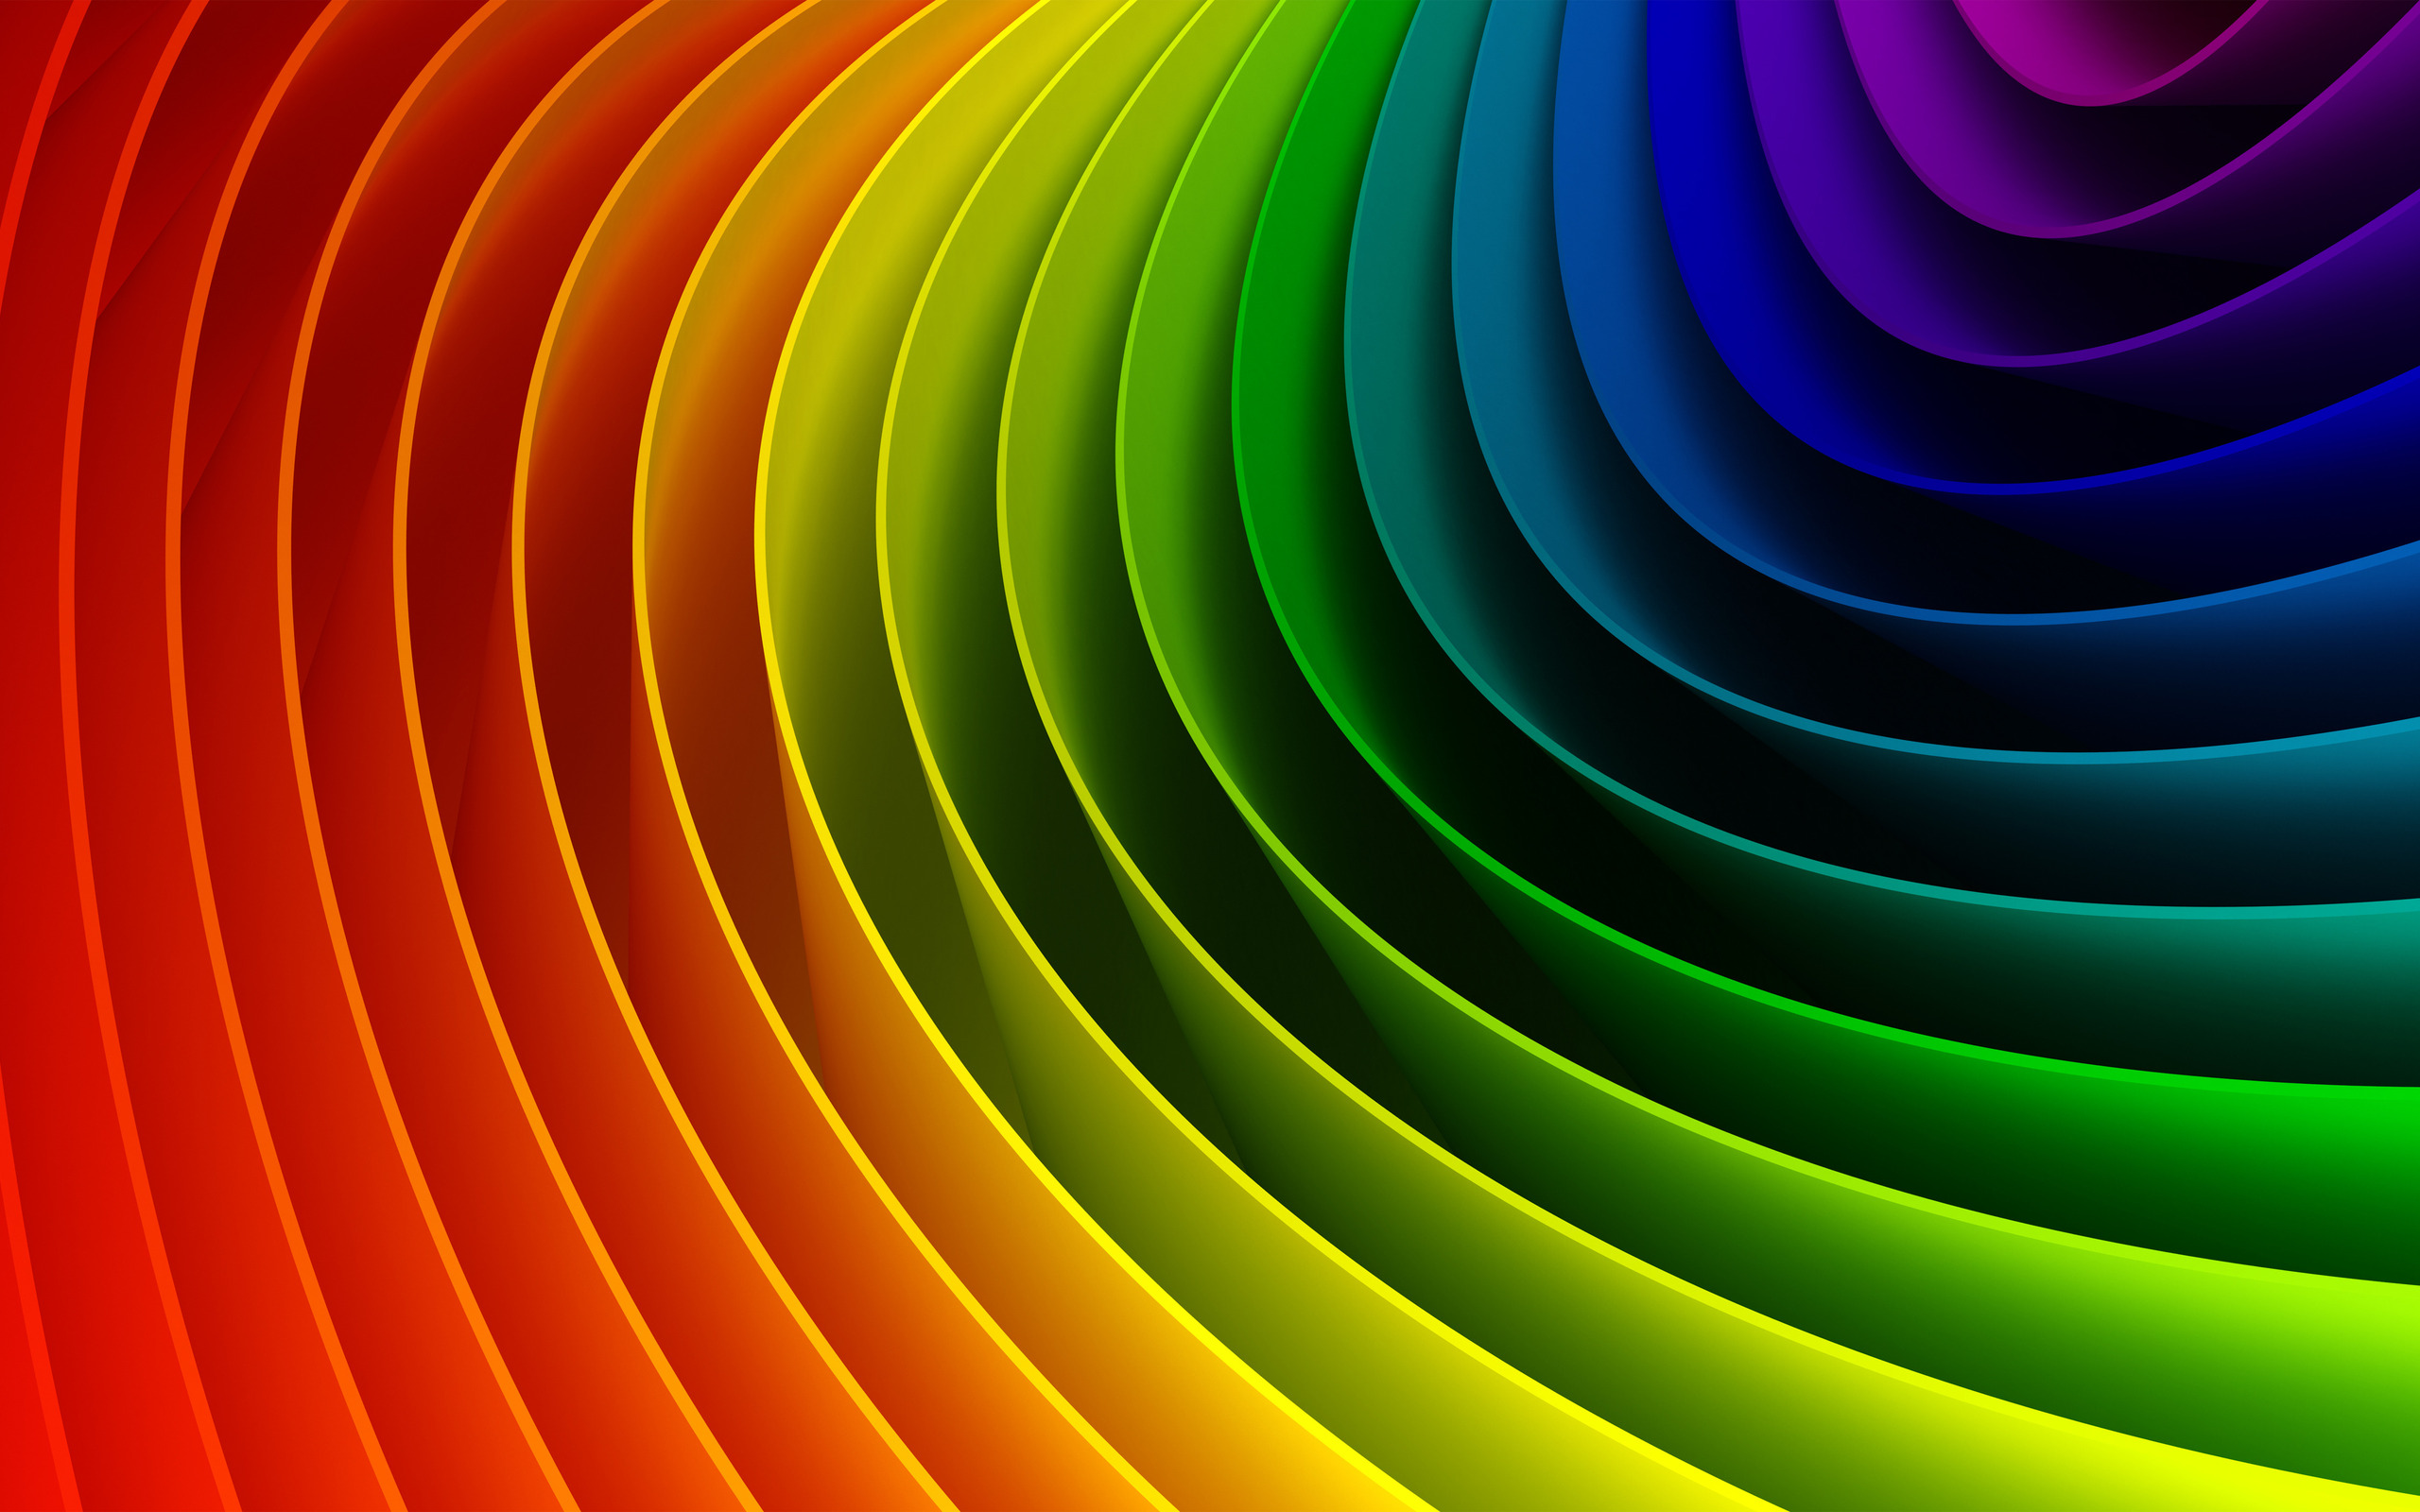 Color spectrum wallpapers and images   wallpapers 2560x1600